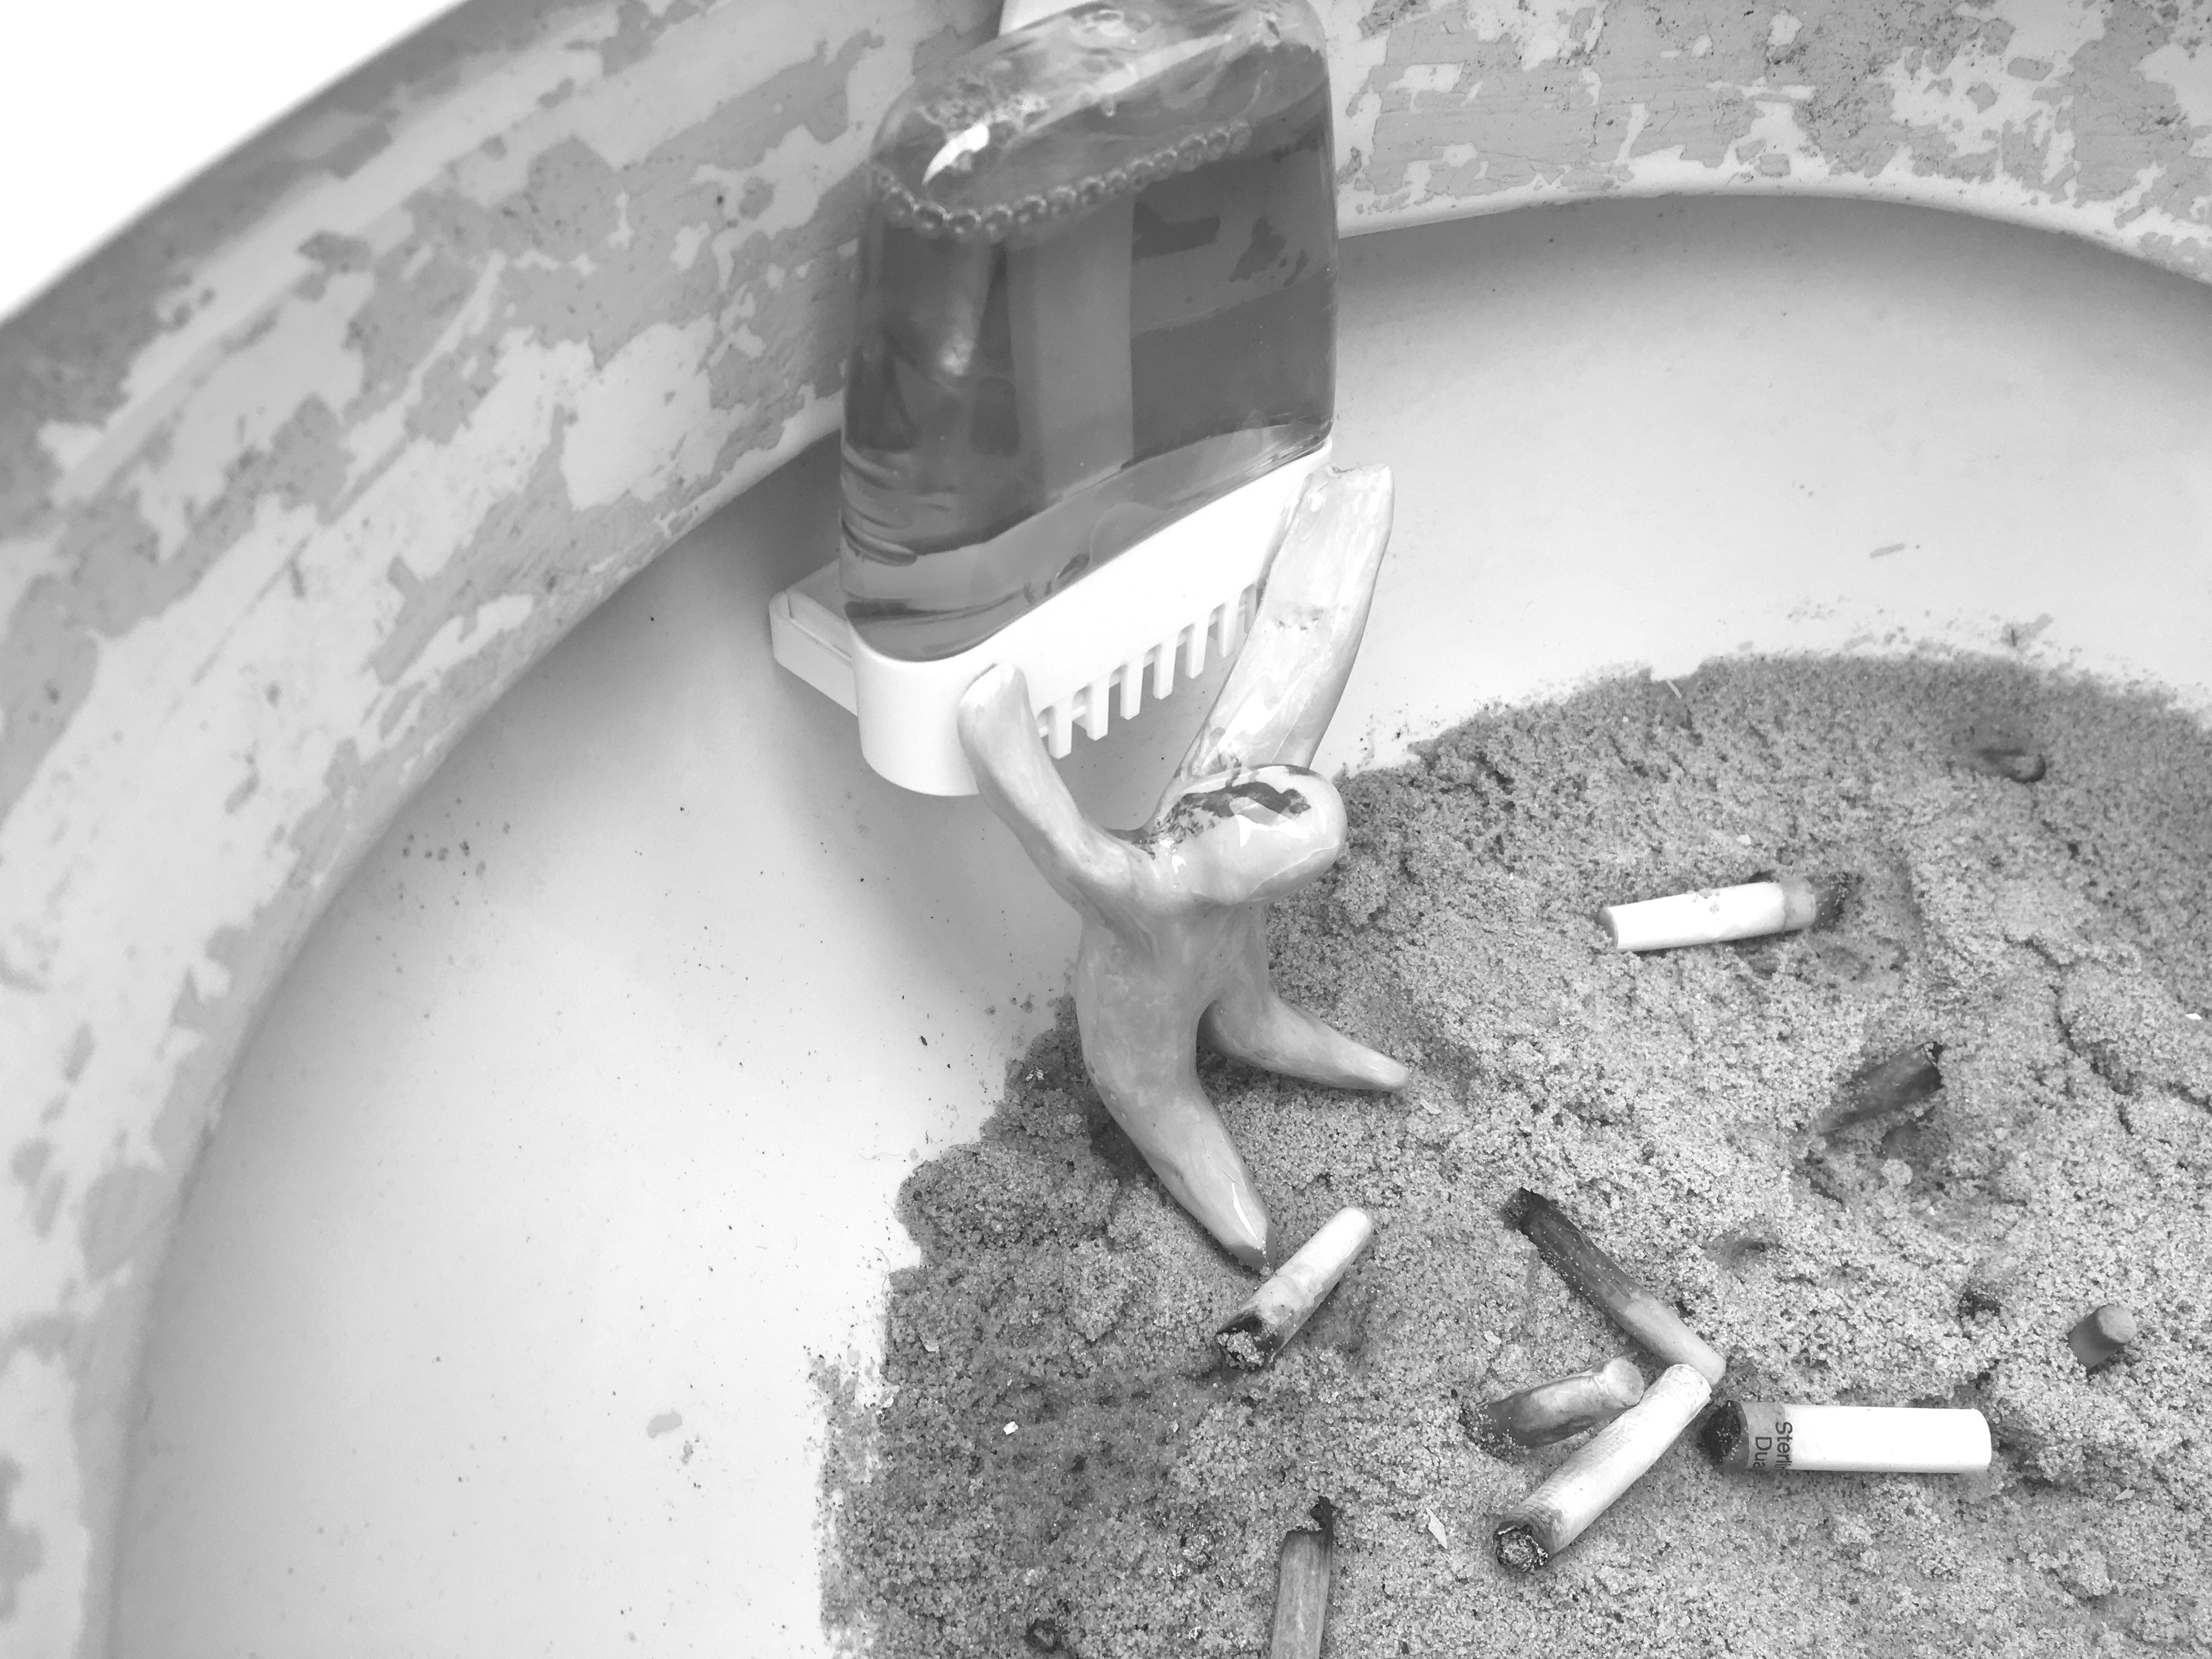 A clay figure in an ashtray full of cigarettes and ashes, on its knees with its hands up.